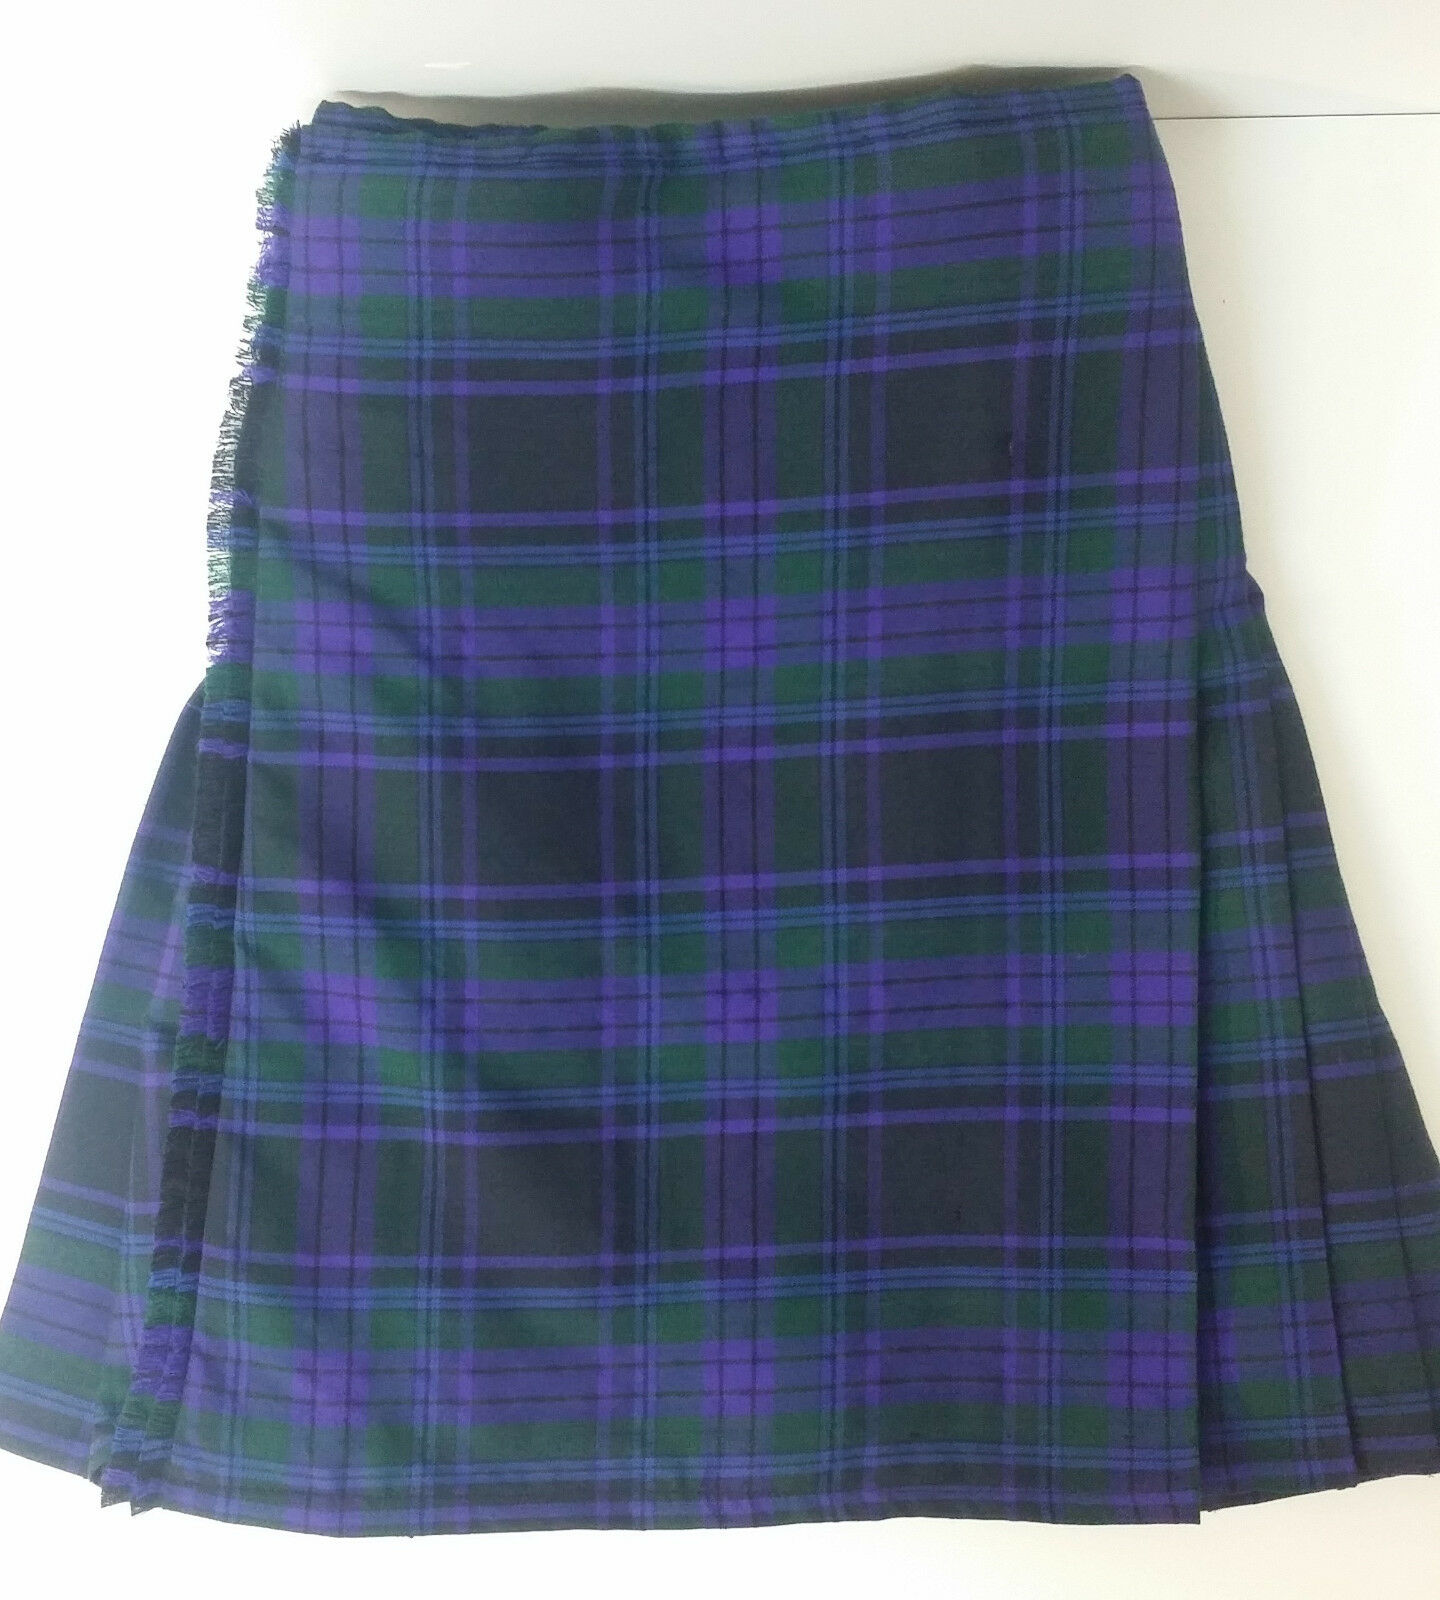 Spirit of Scotland 8 Yard 100% Wool Kilt Ex Hire A1 condition fully cleaned